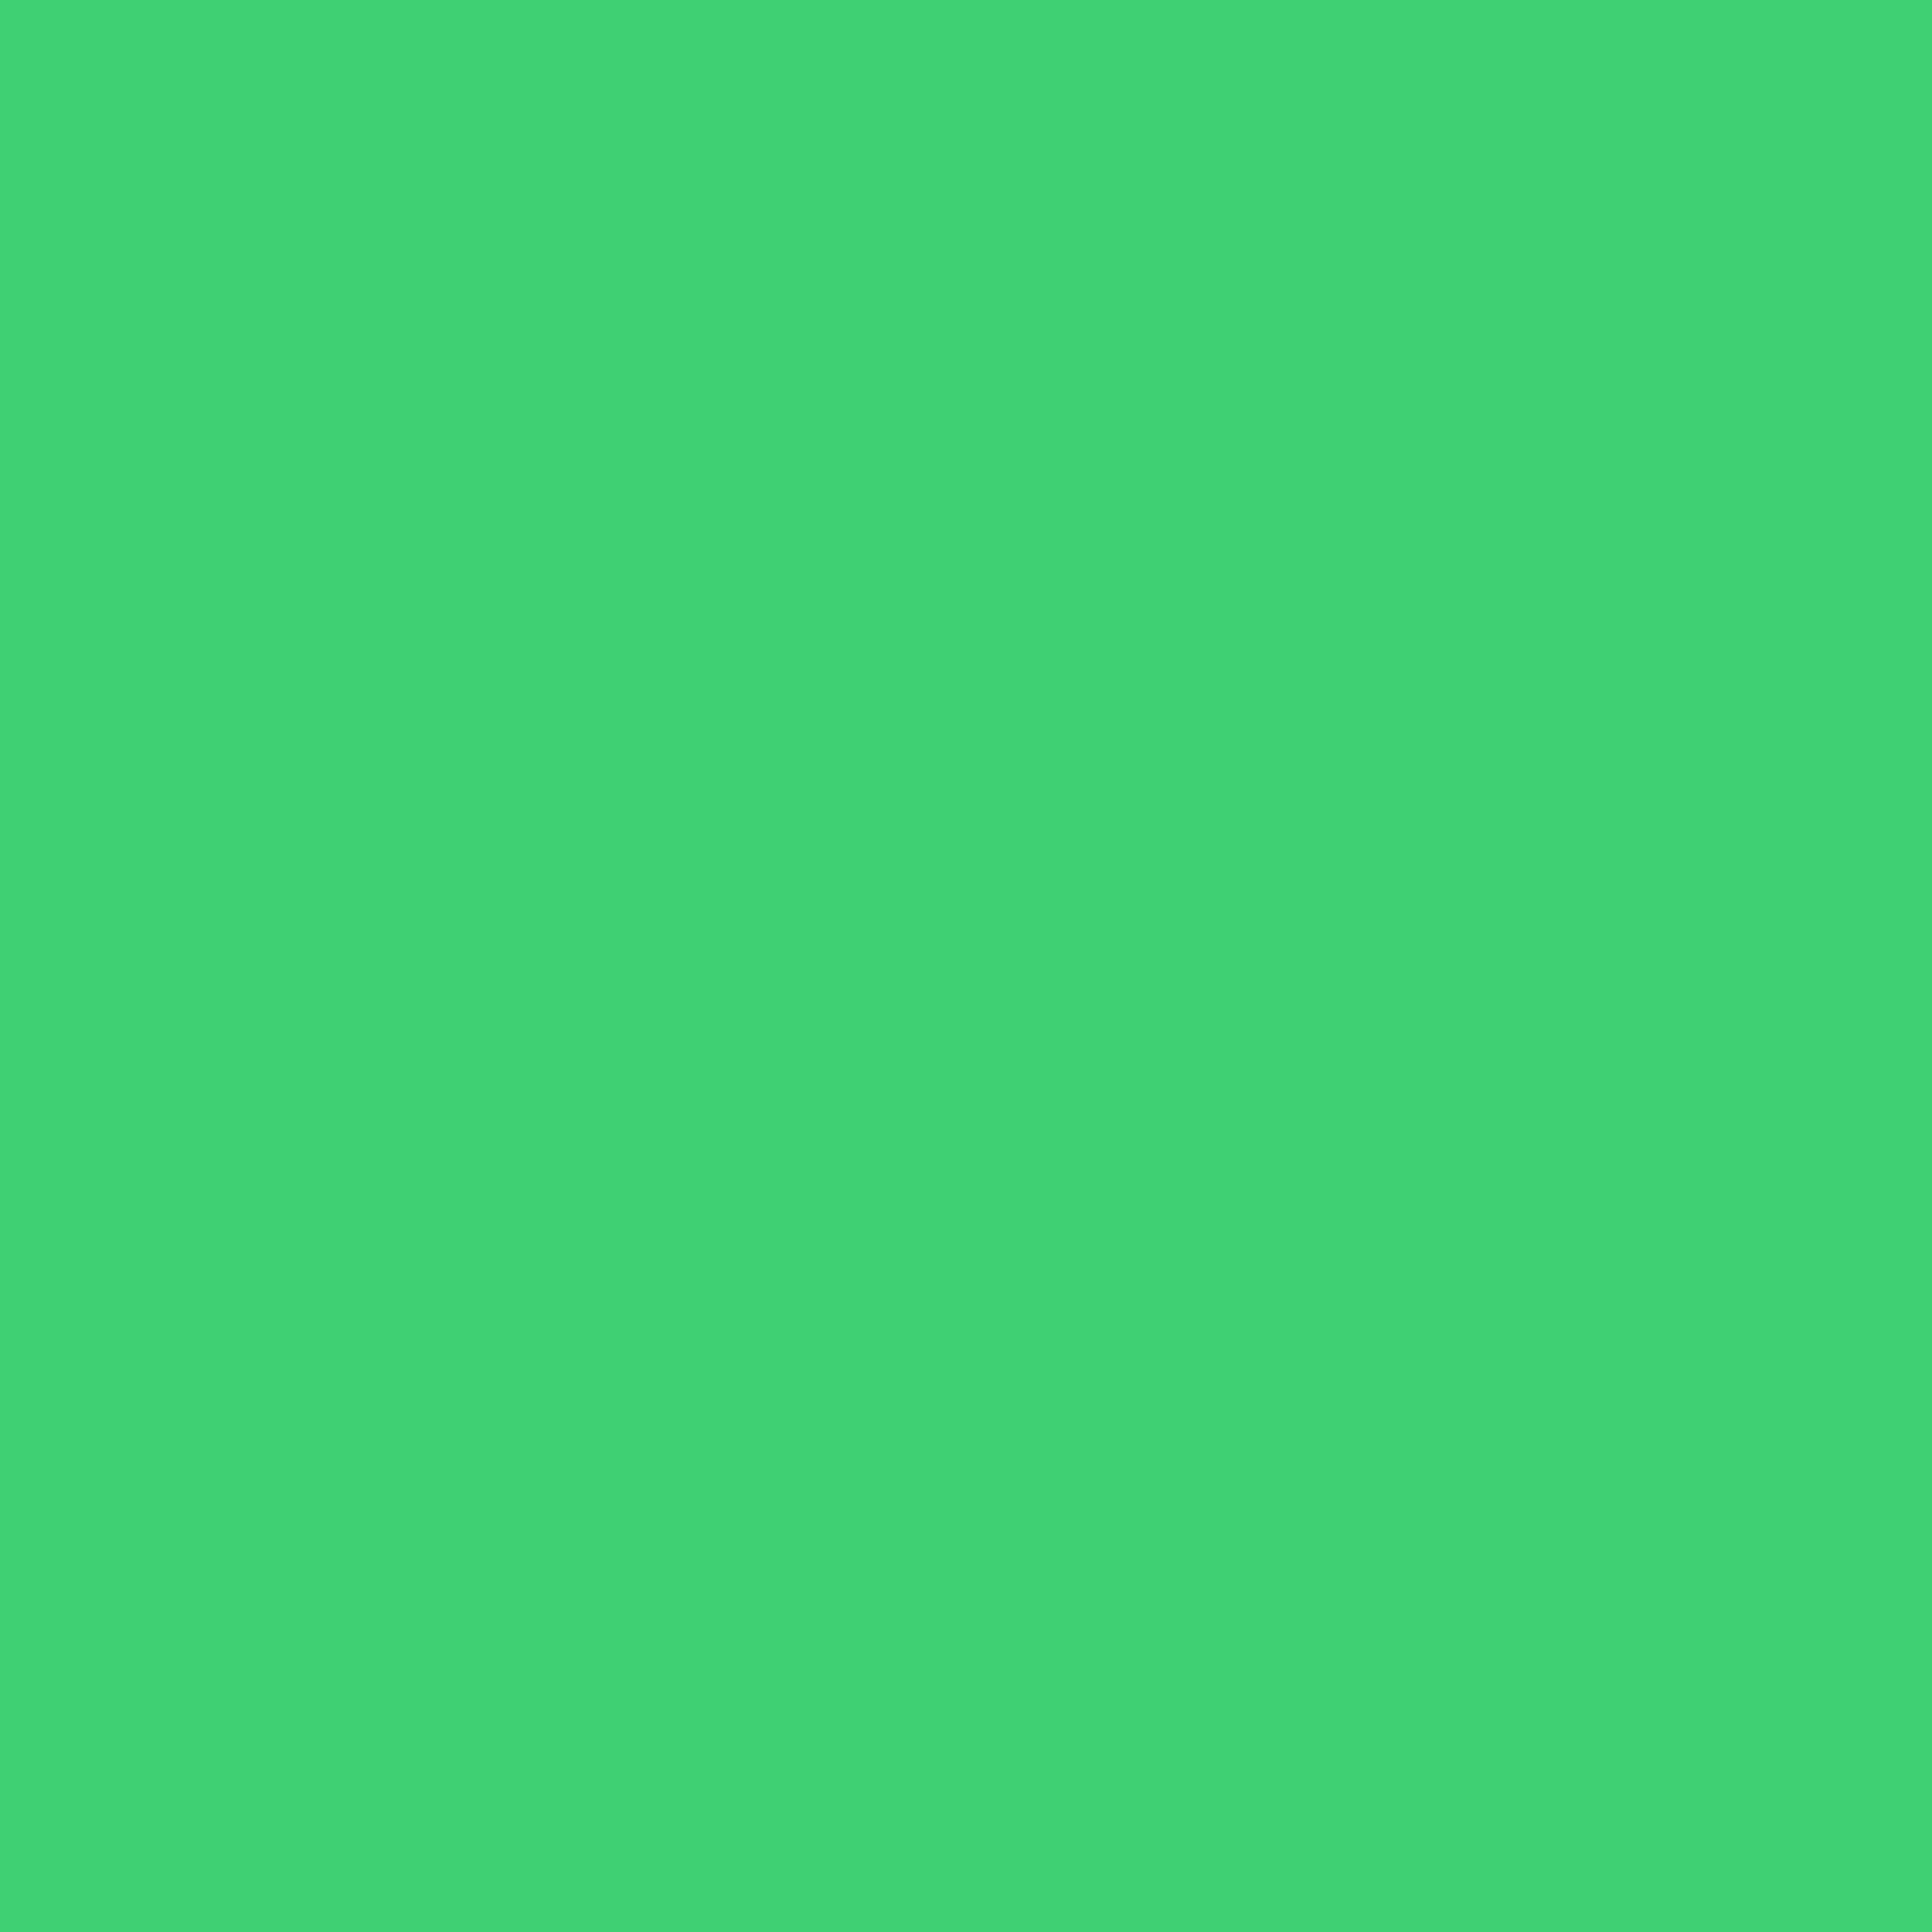 2048x2048 UFO Green Solid Color Background